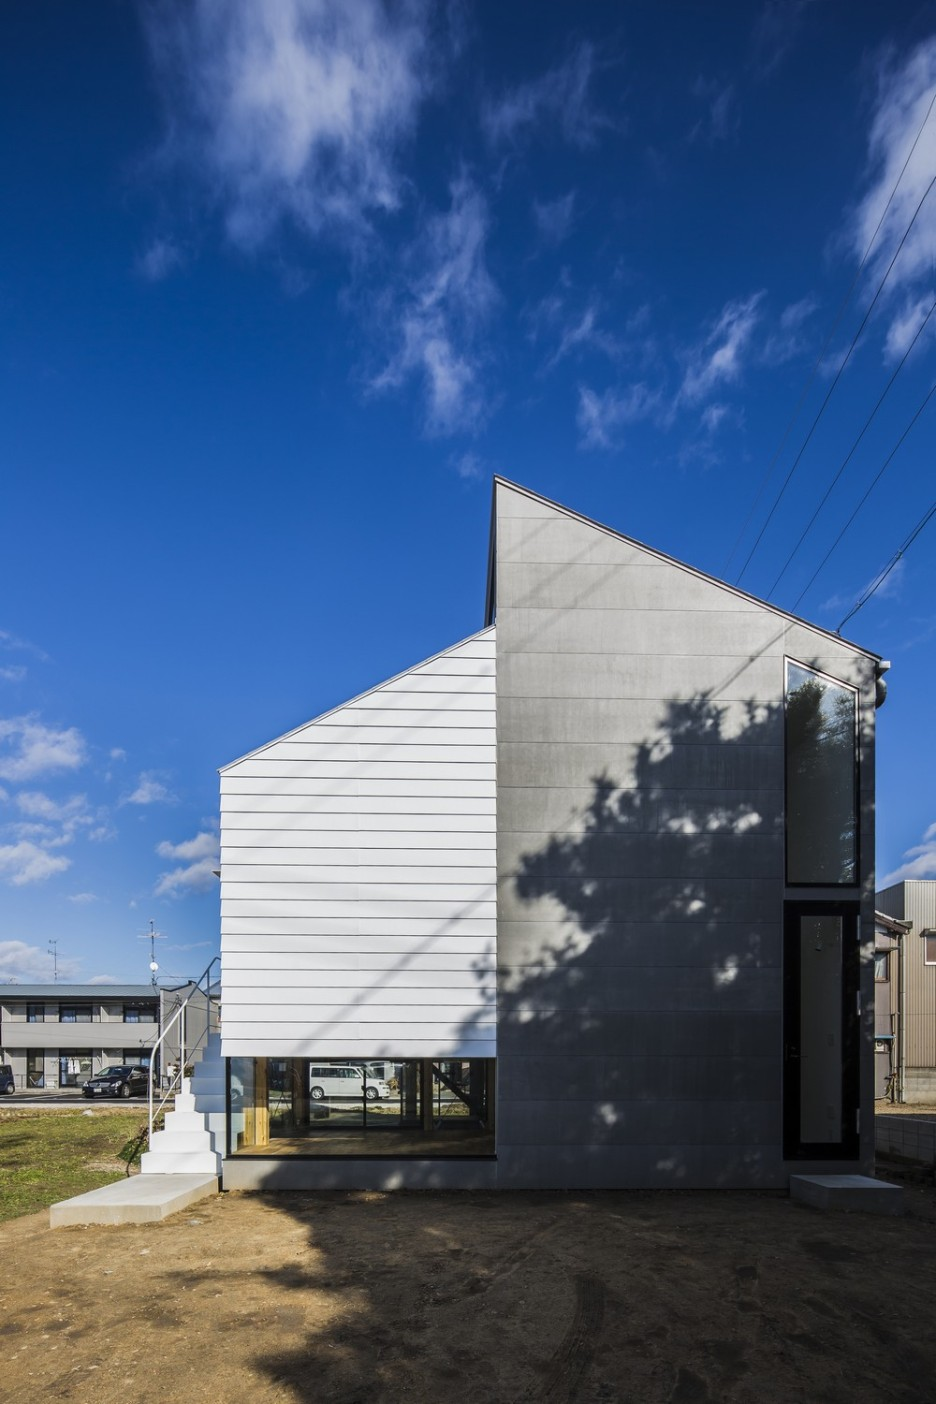 Modern Japanese Architecture Home Gives Inspiring Design Idea: Unique Kawate Residence Home Design Exterior Used Small Home Shaped Decoration In Contemporary Decoration Ideas For Home Inspiration